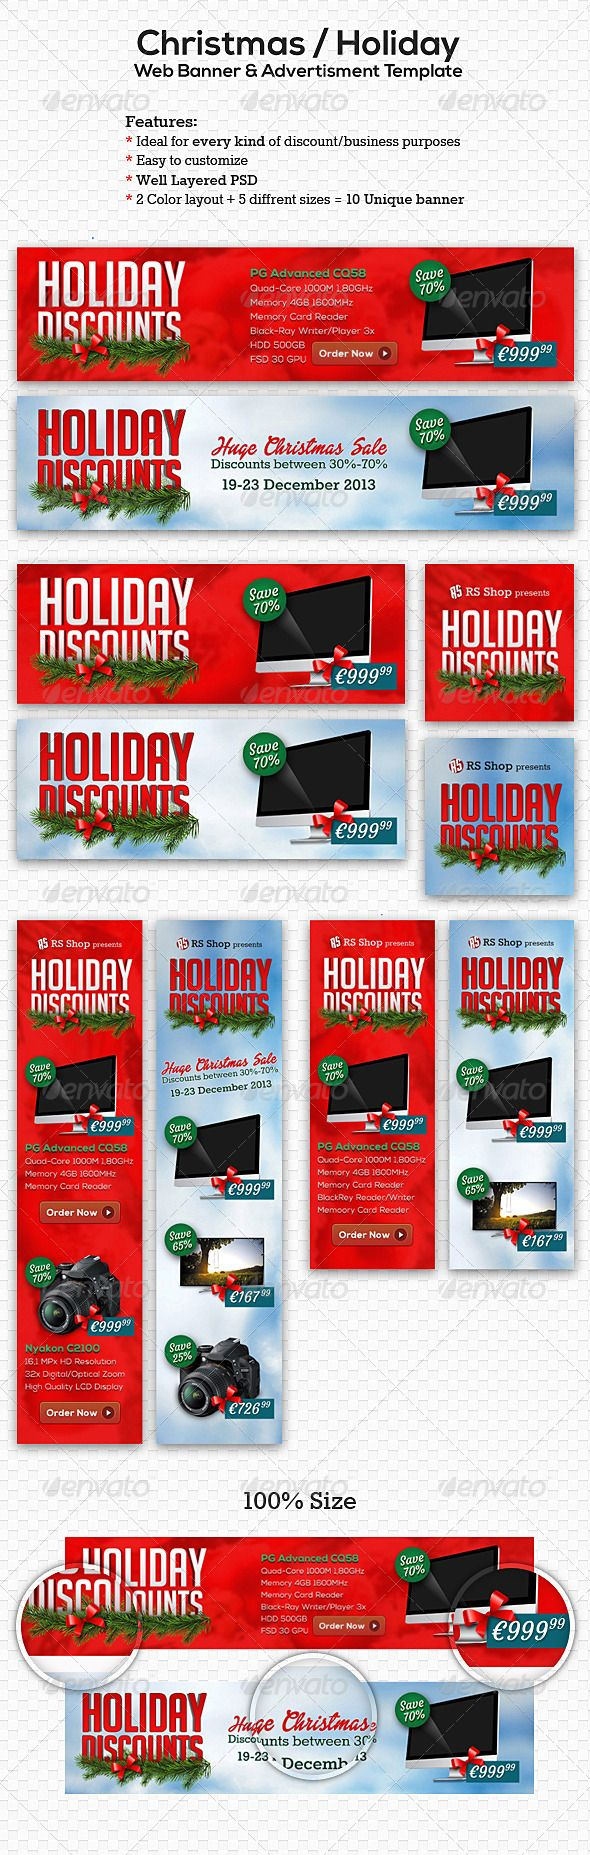 Christmas Holiday Web Banner Advertisment Template PSD | Buy and Download: http://graphicriver.net/item/christmas-holiday-web-banner-advertisment-template/6246318?WT.ac=category_thumb&WT.z_author=overthinking&ref=ksioks